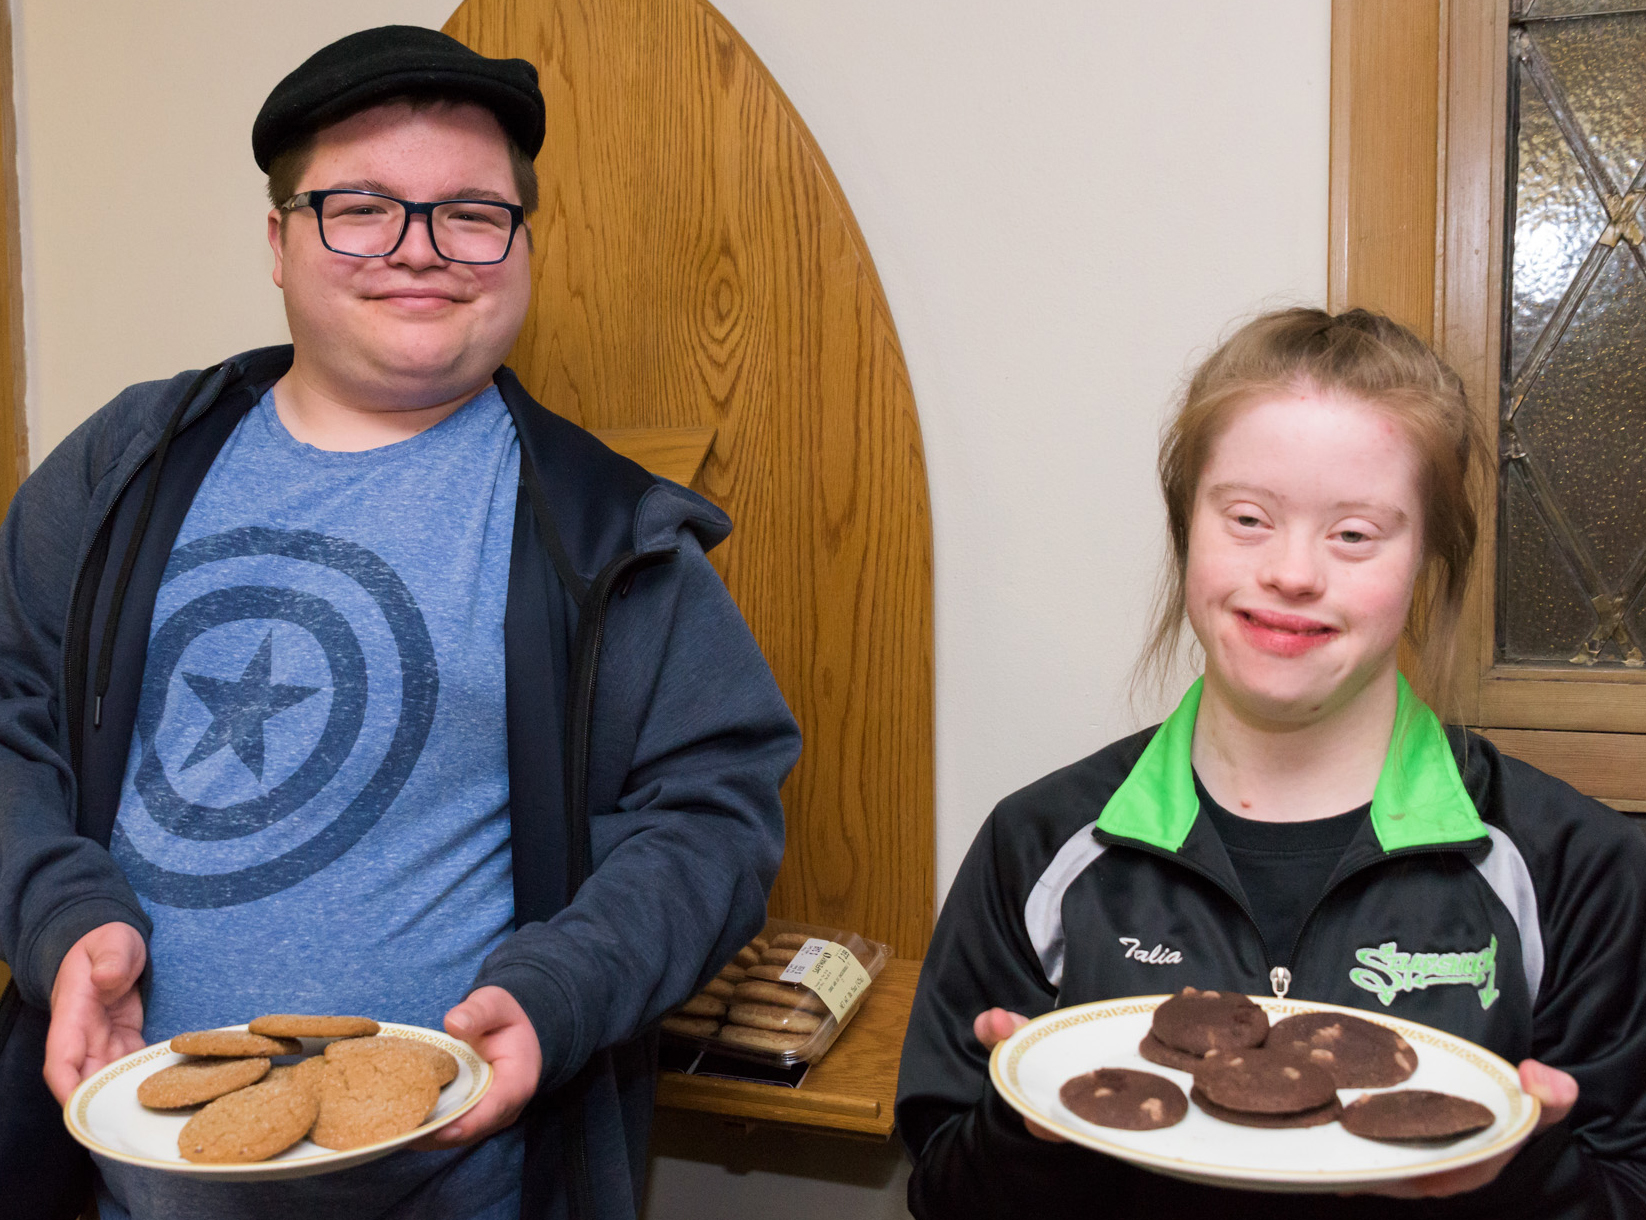 Two young adults holding plates of cookies